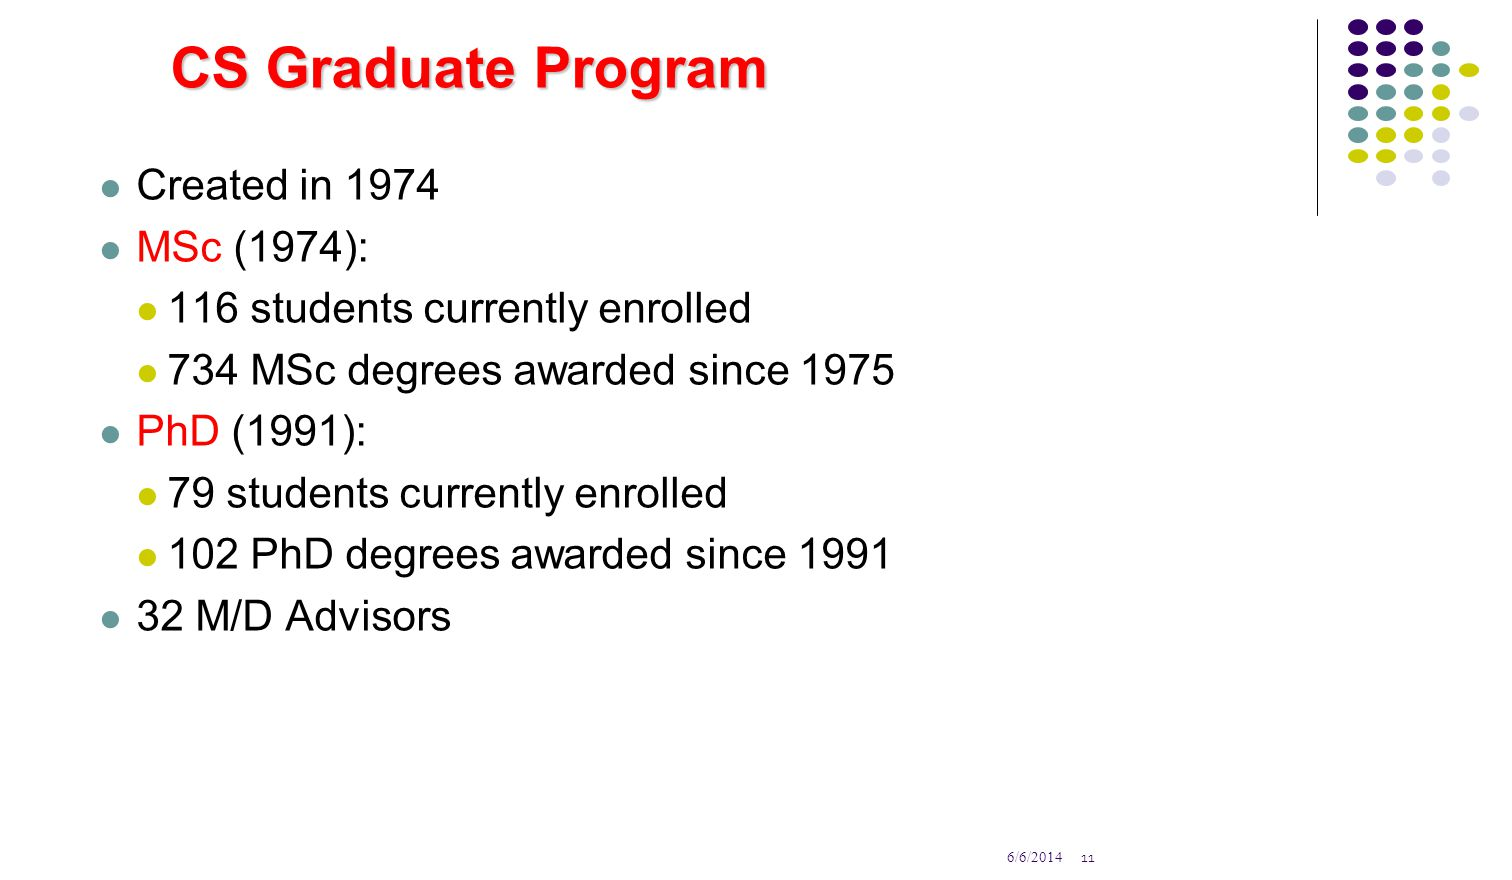 11 6/6/2014 CS Graduate Program Created in 1974 MSc (1974): 116 students currently enrolled 734 MSc degrees awarded since 1975 PhD (1991): 79 students currently enrolled 102 PhD degrees awarded since 1991 32 M/D Advisors